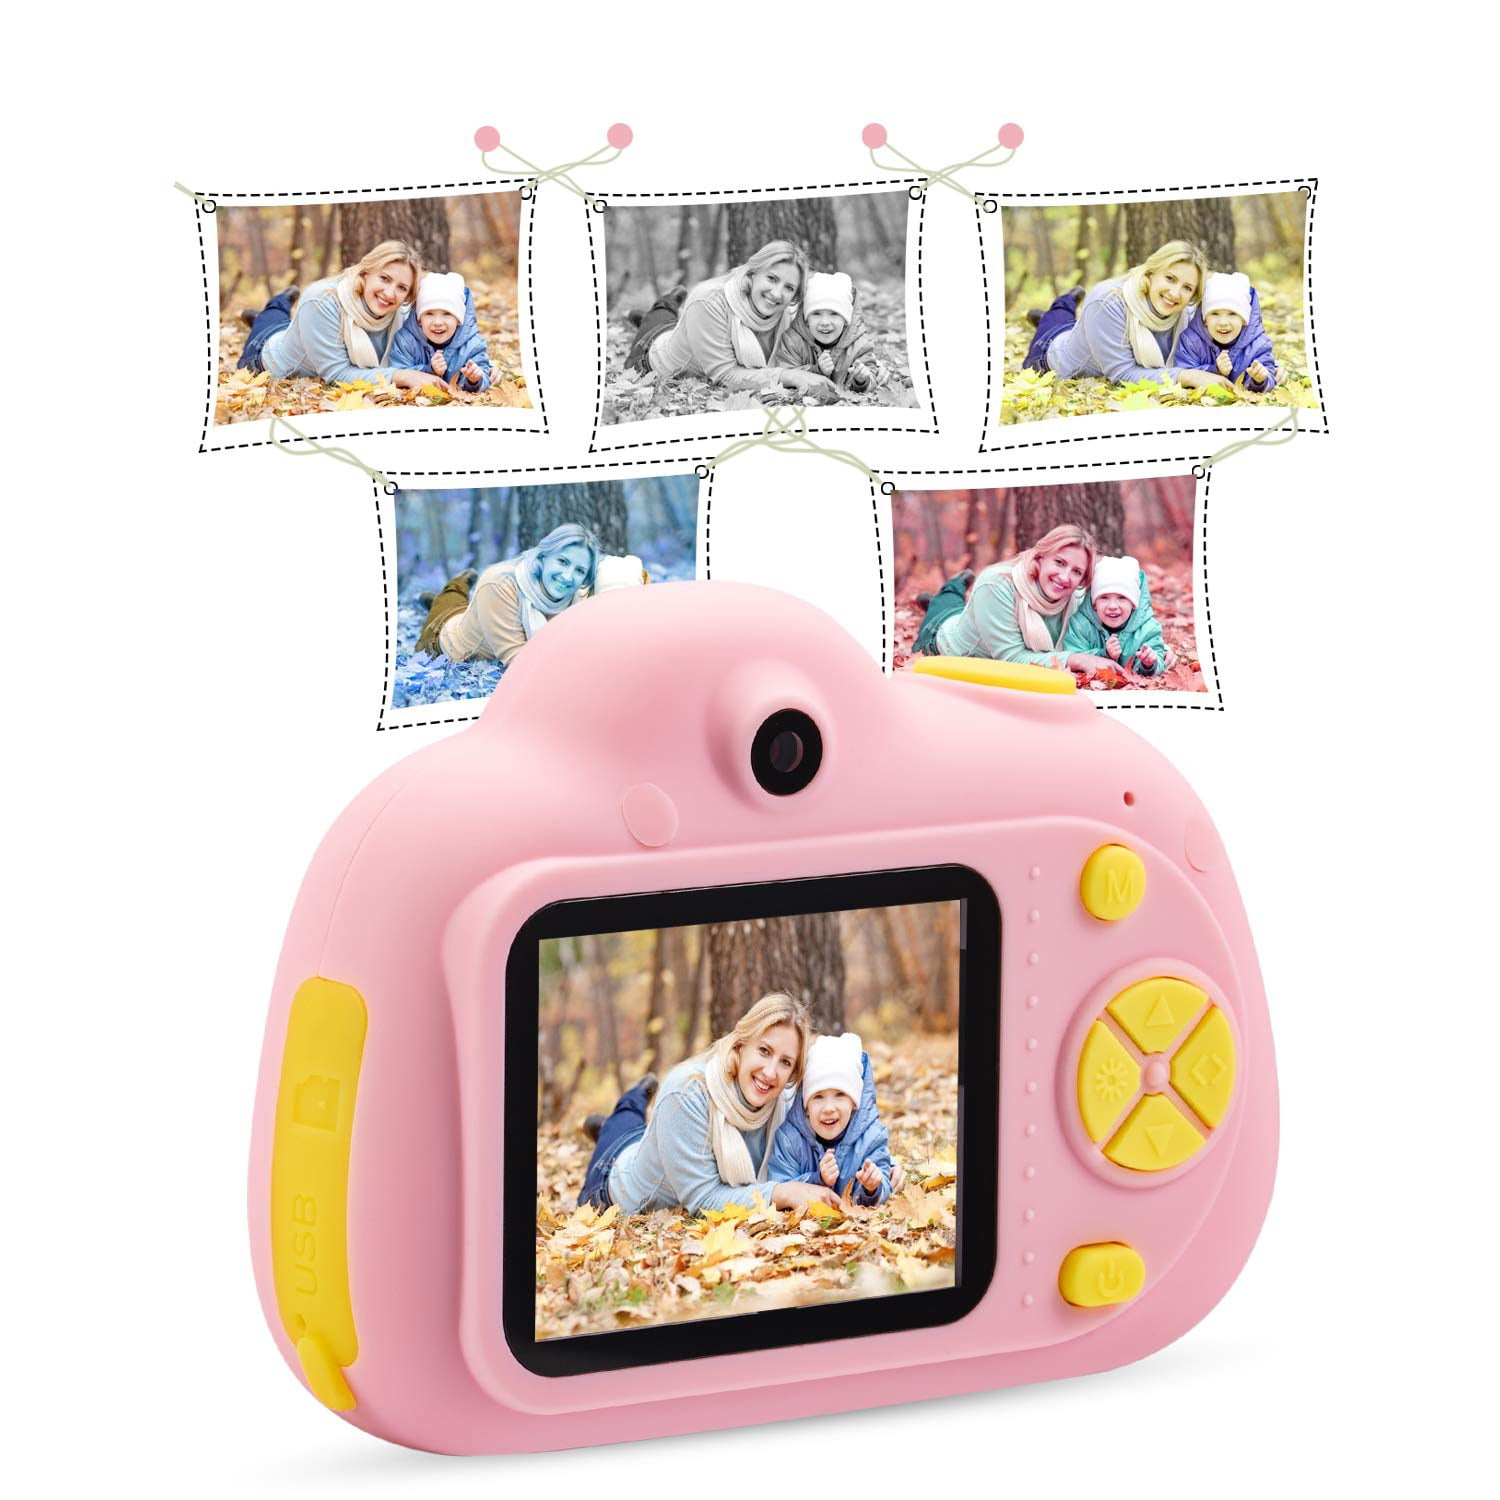 Kids Toys Camera For 3-6 Year Old Girls Boys, Compact